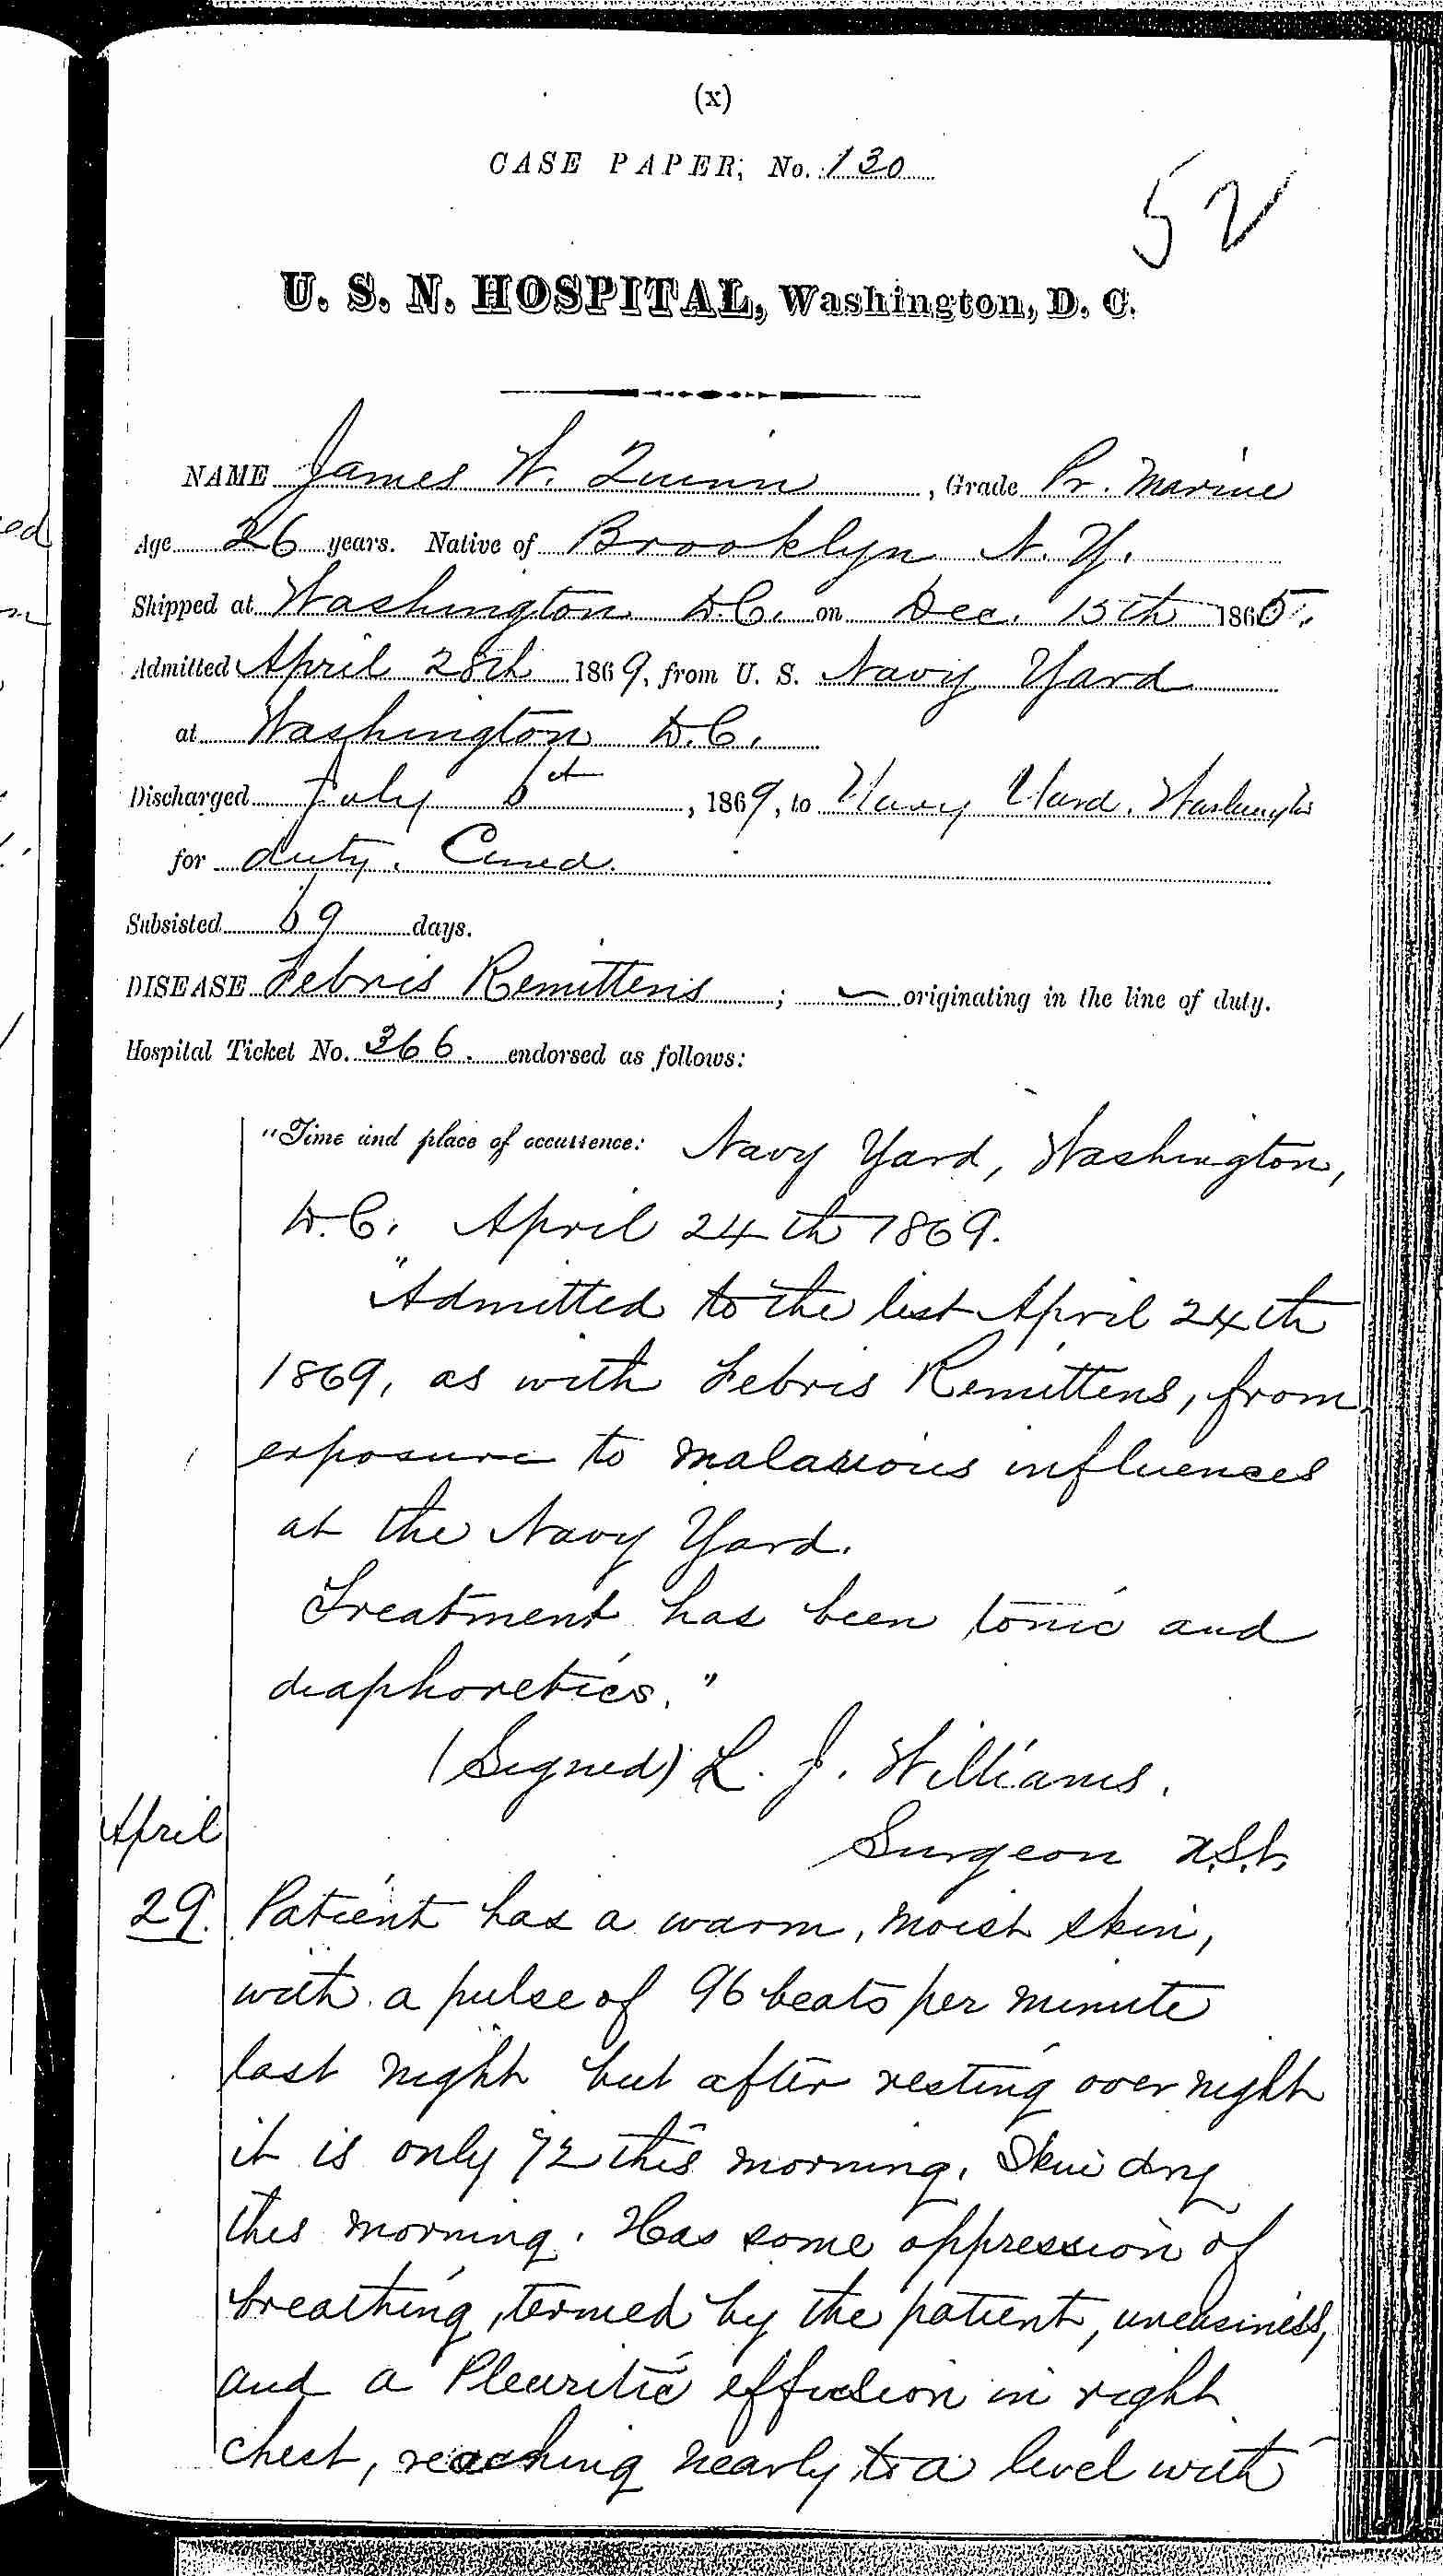 Entry for James W. Quinn (page 1 of 7) in the log Hospital Tickets and Case Papers - Naval Hospital - Washington, D.C. - 1868-69